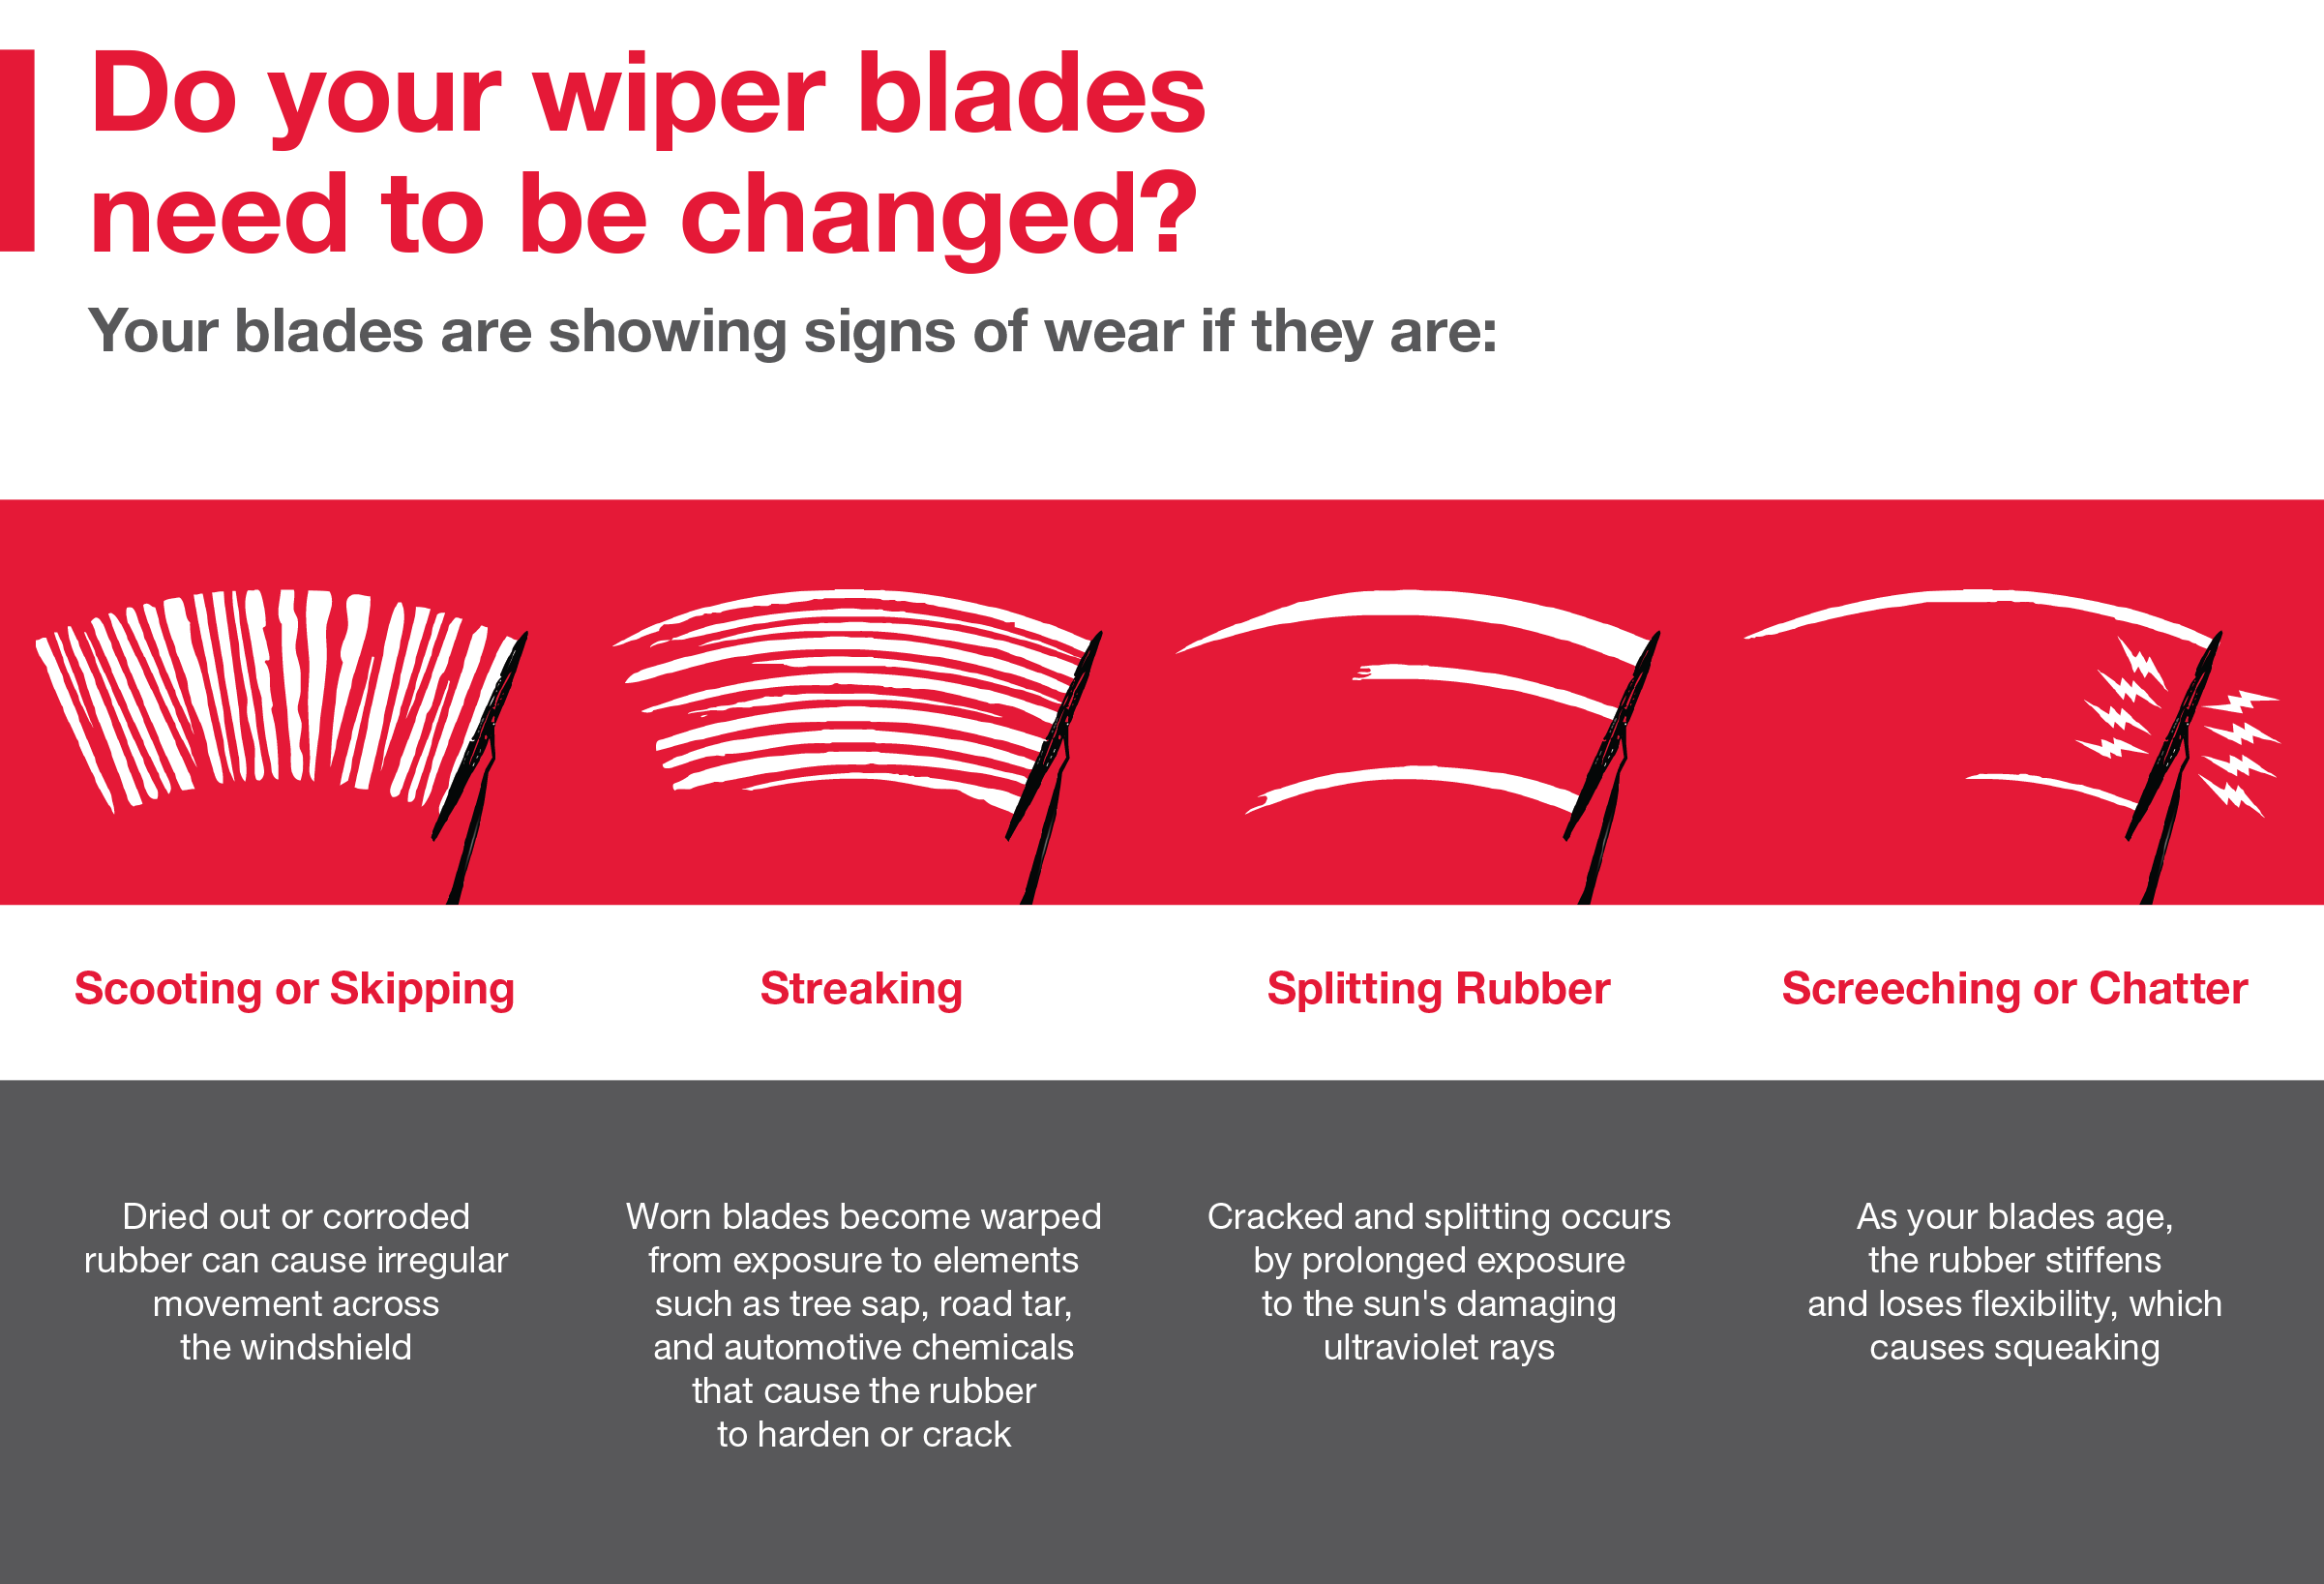 Do your wiper blades need to be changed? Call your local dealer for more info: 731.668.1234